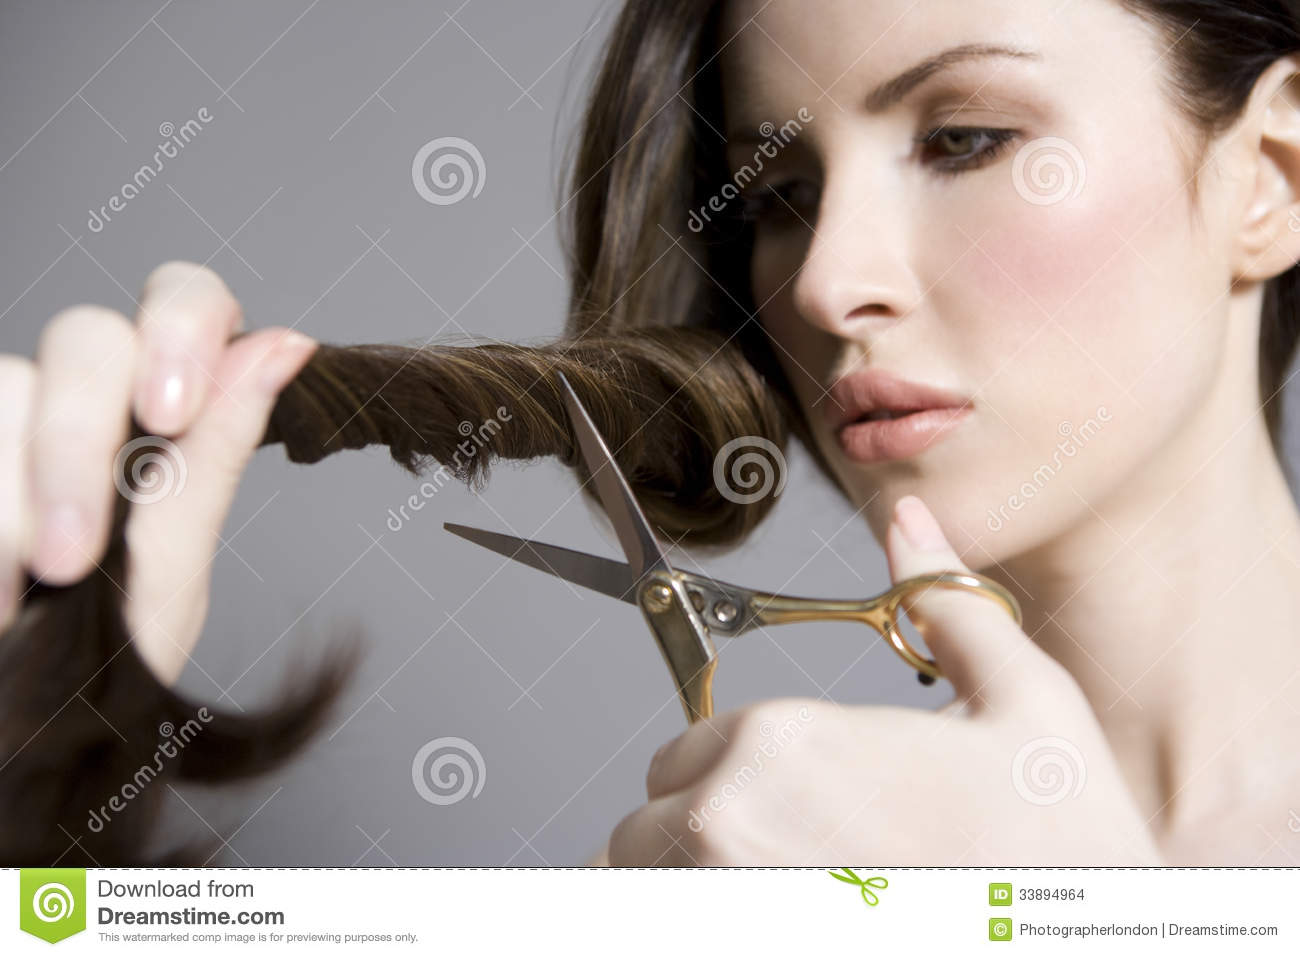 Beautiful Hair Cutting : Closeup of a beautiful young woman cutting her long hair against gray ...